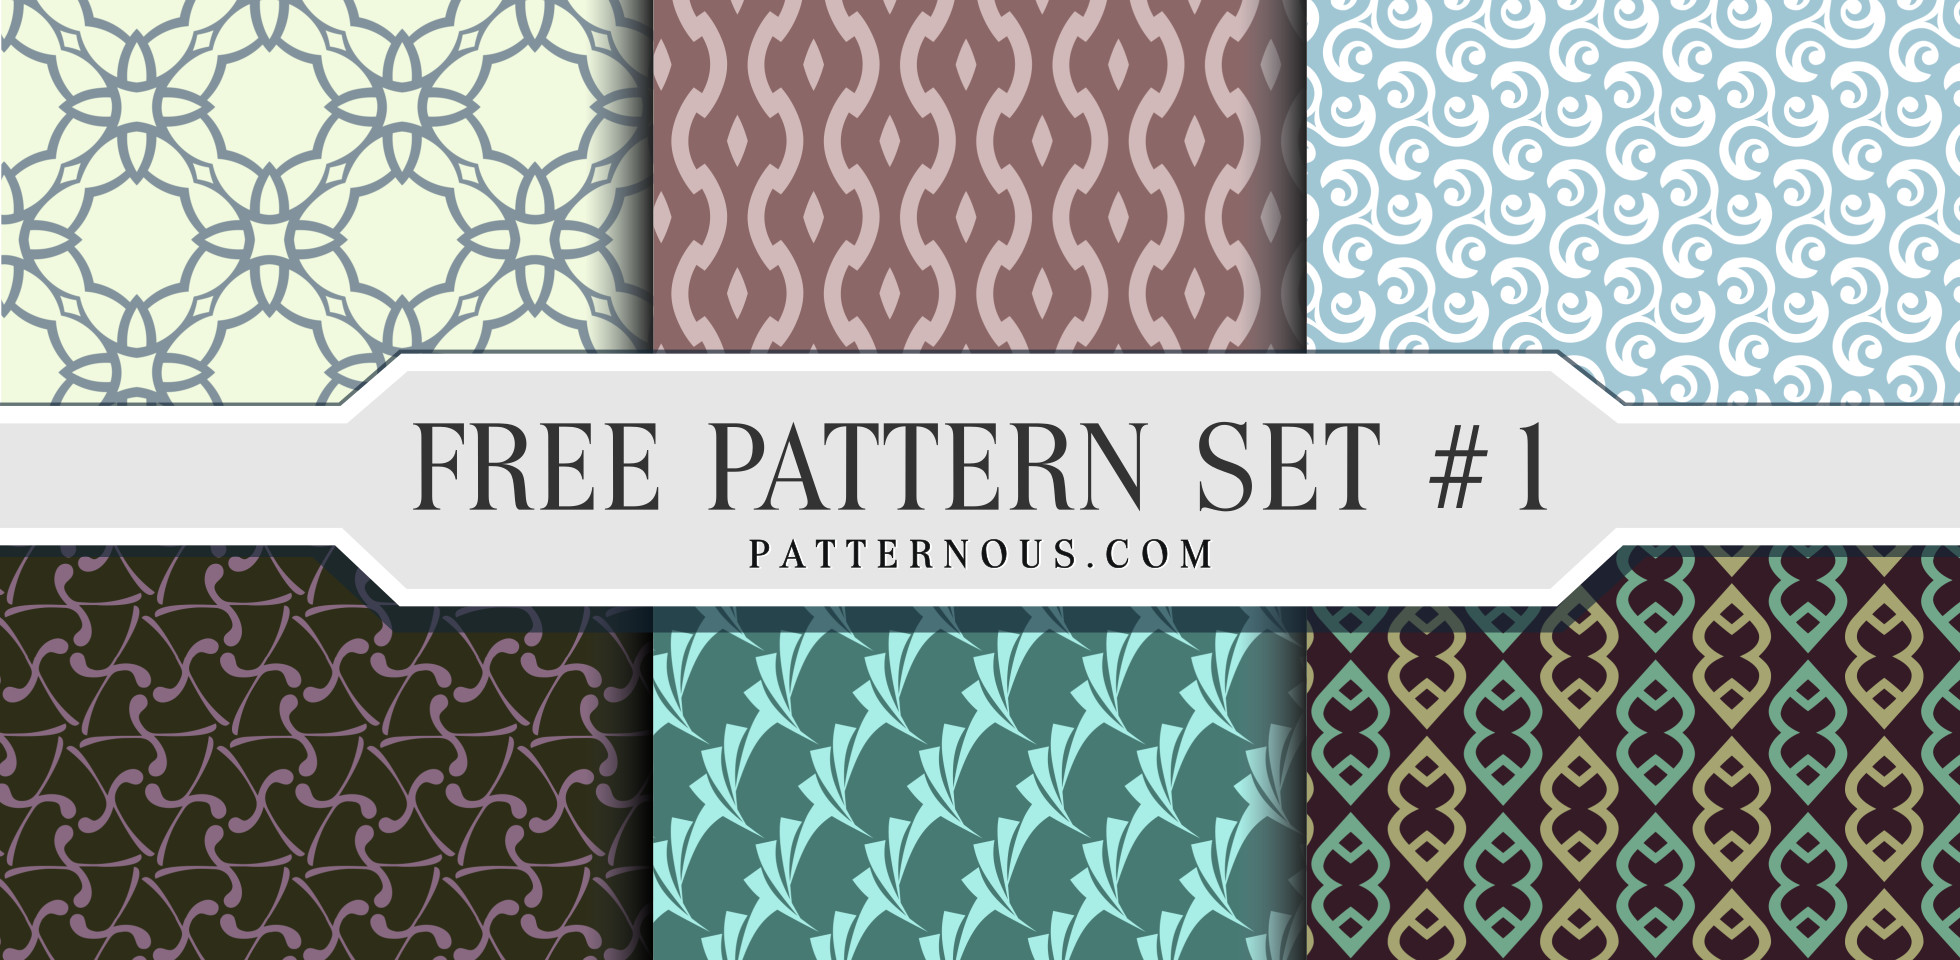 Free Download: Seamless Pattern Set